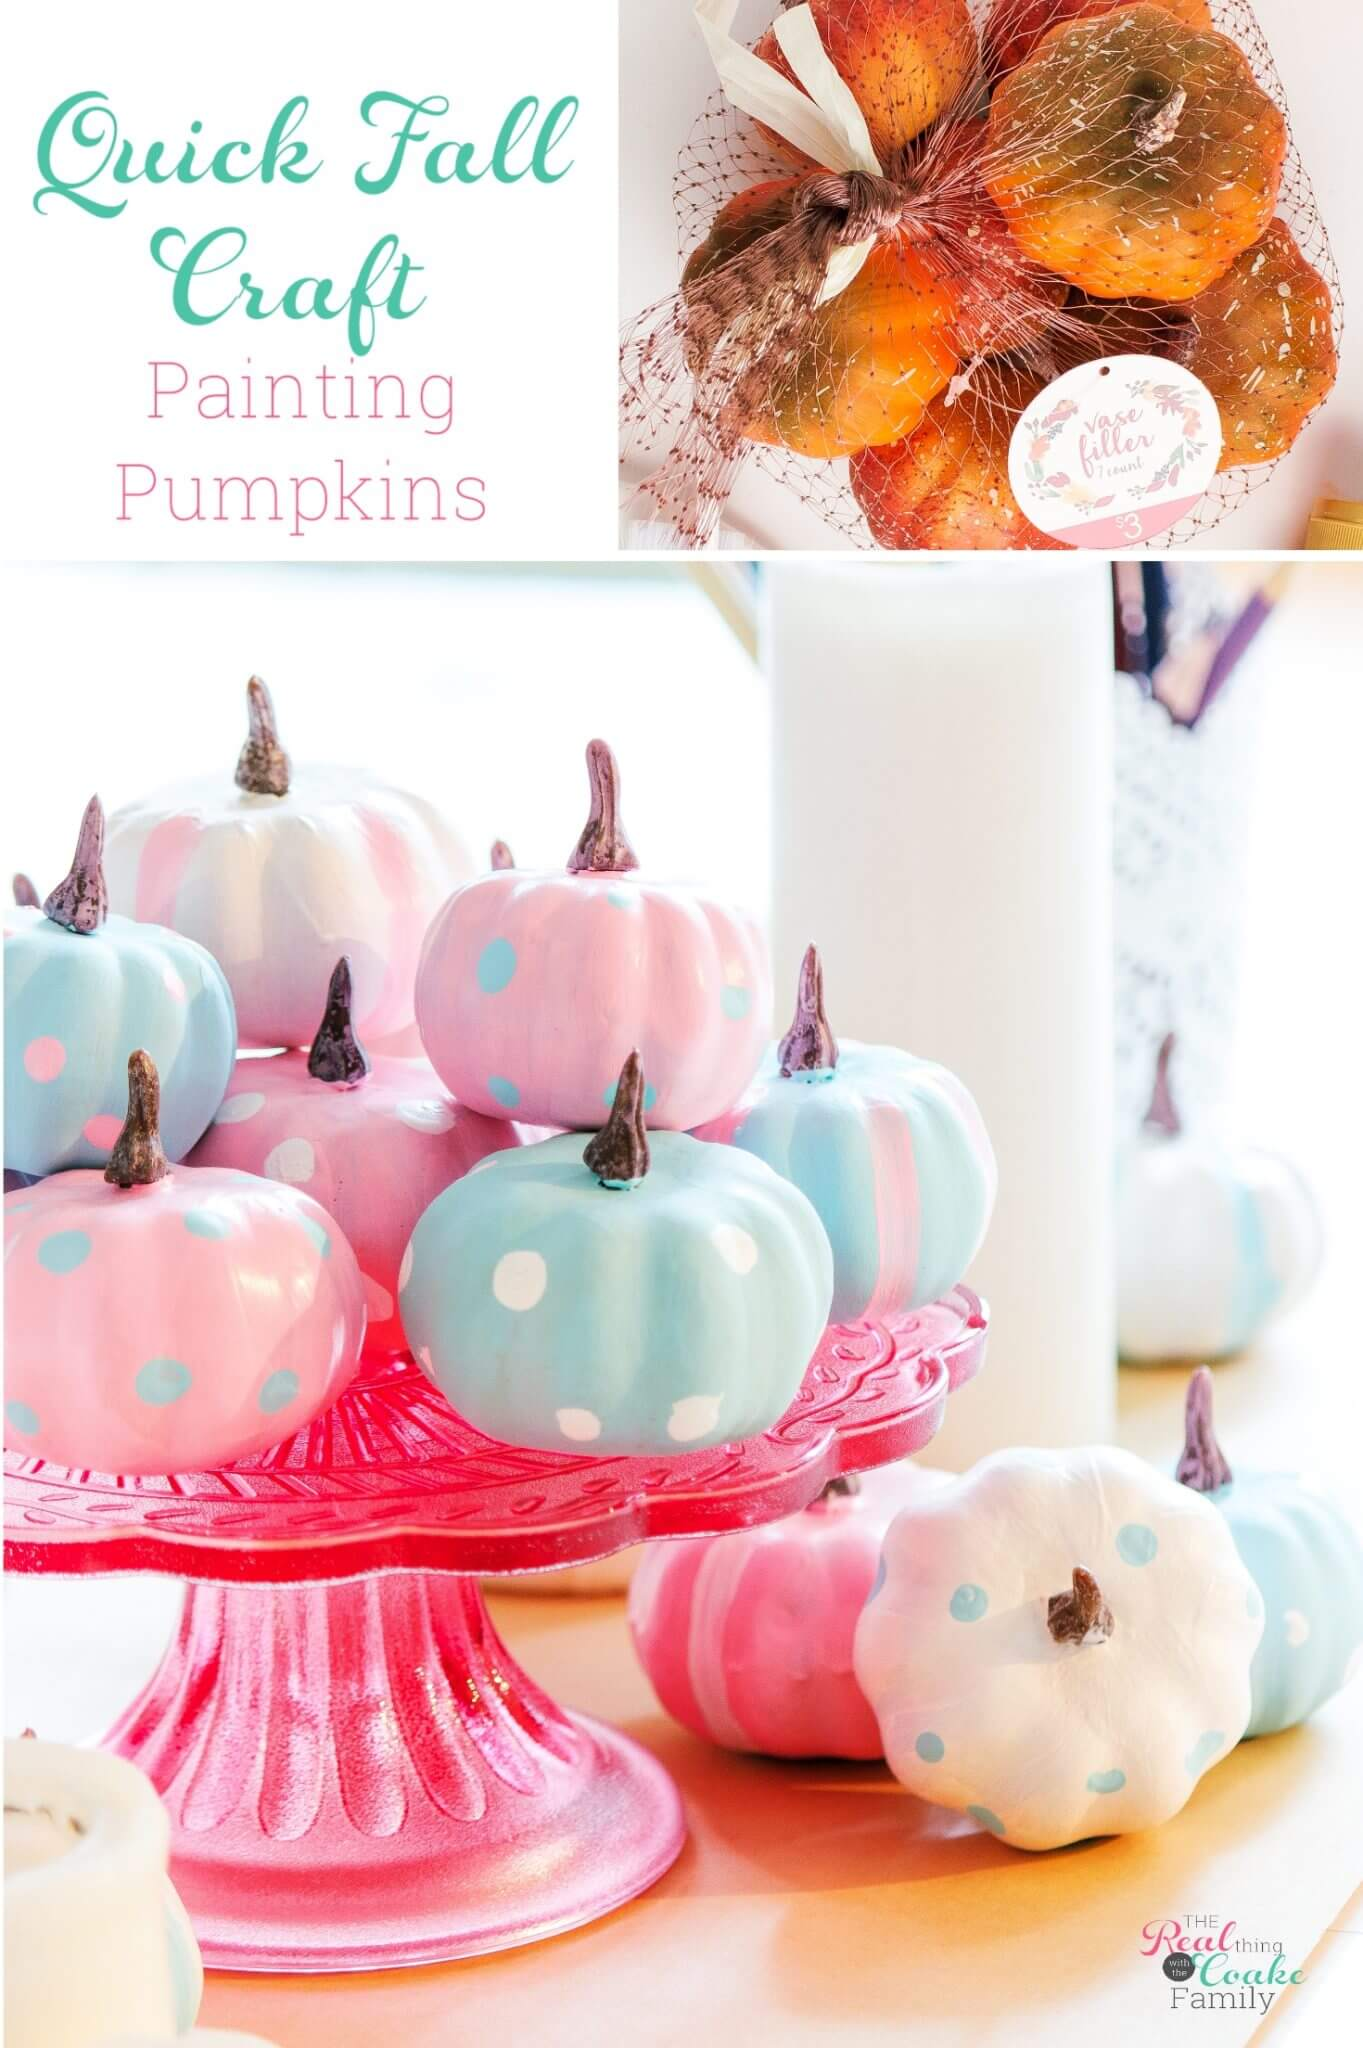 3 Easy Steps to Craft Bliss with these Pumpkin Painting